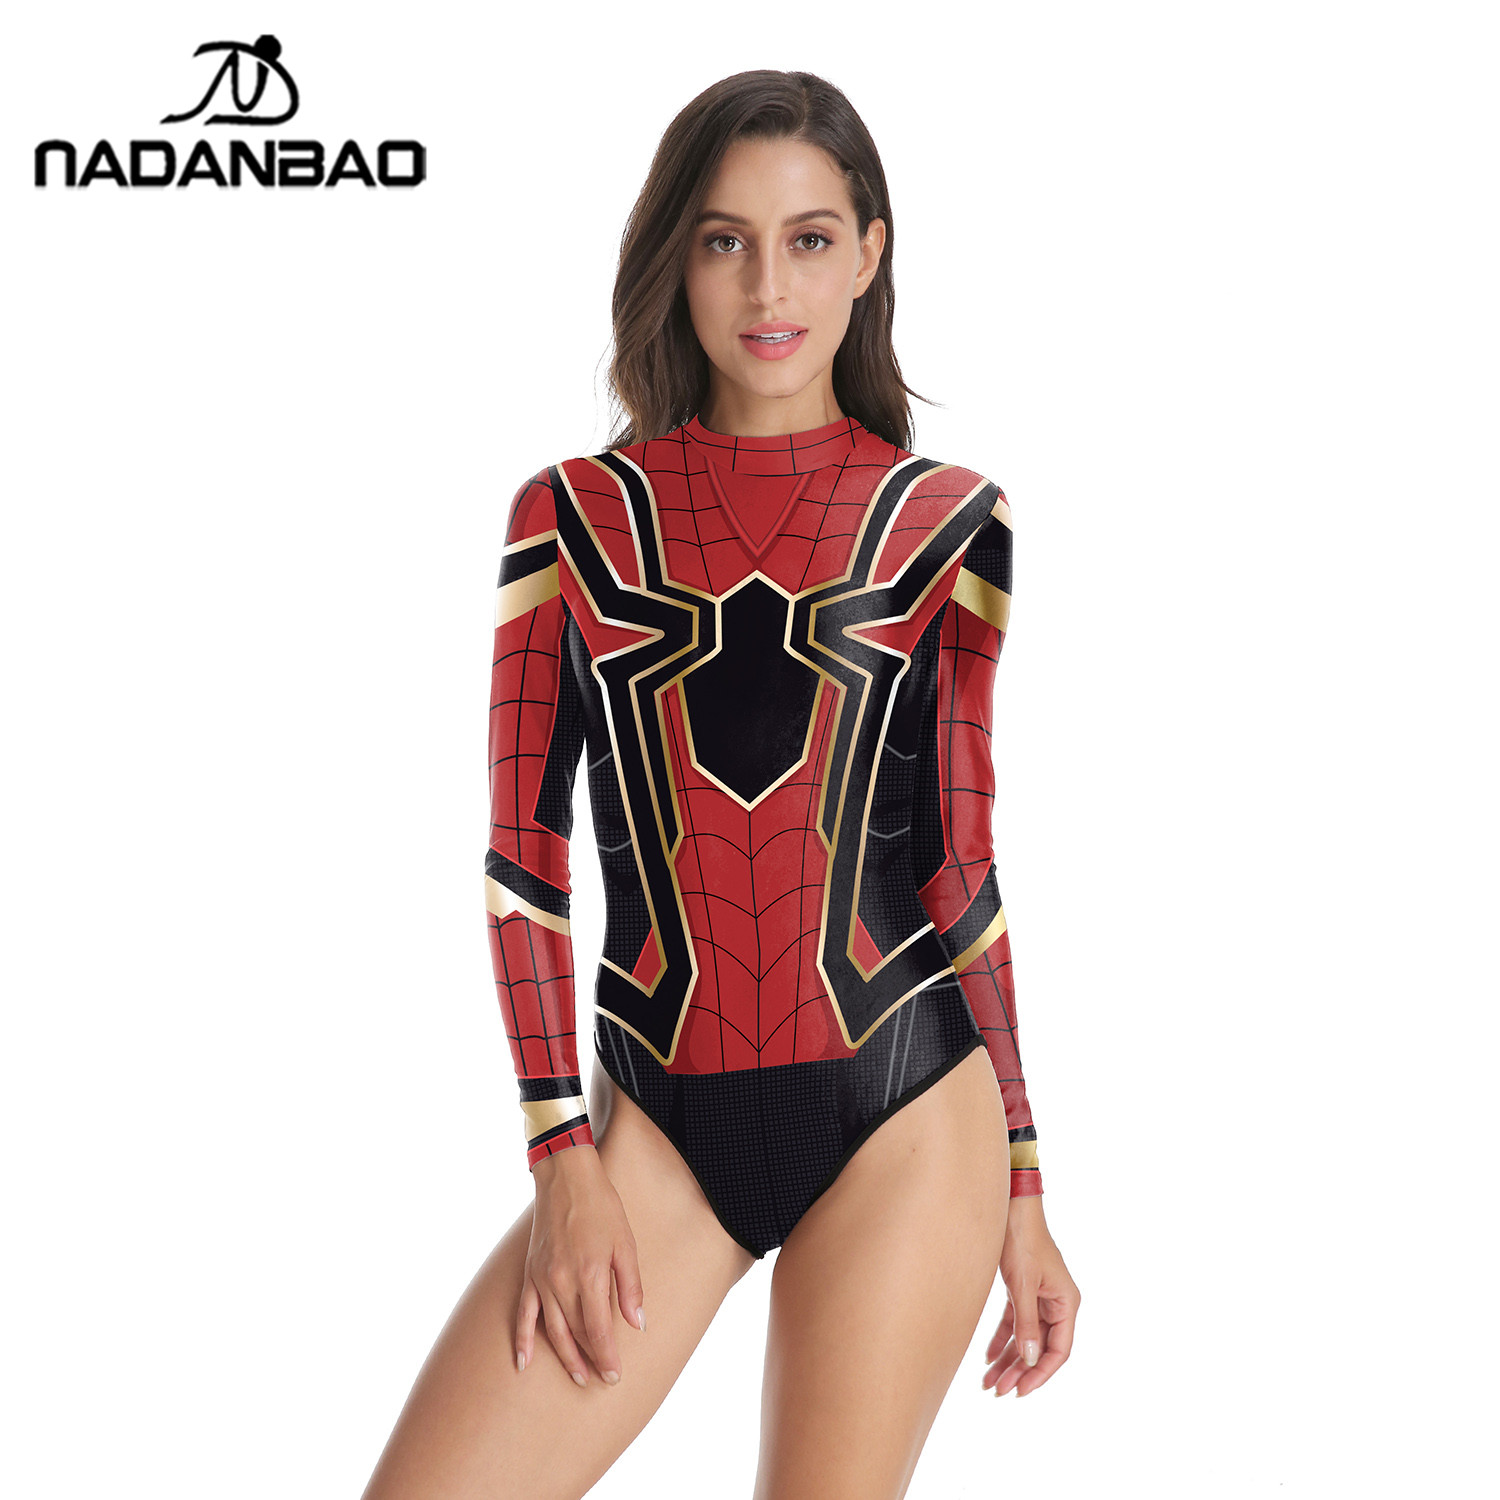 2019 One Piece Swimsuit 3D Printing Long Sleeve Zippered Surfing Deadpool Sexy Bathing Suit Women De Bano Women Swim Suit in Body Suits from Sports Entertainment